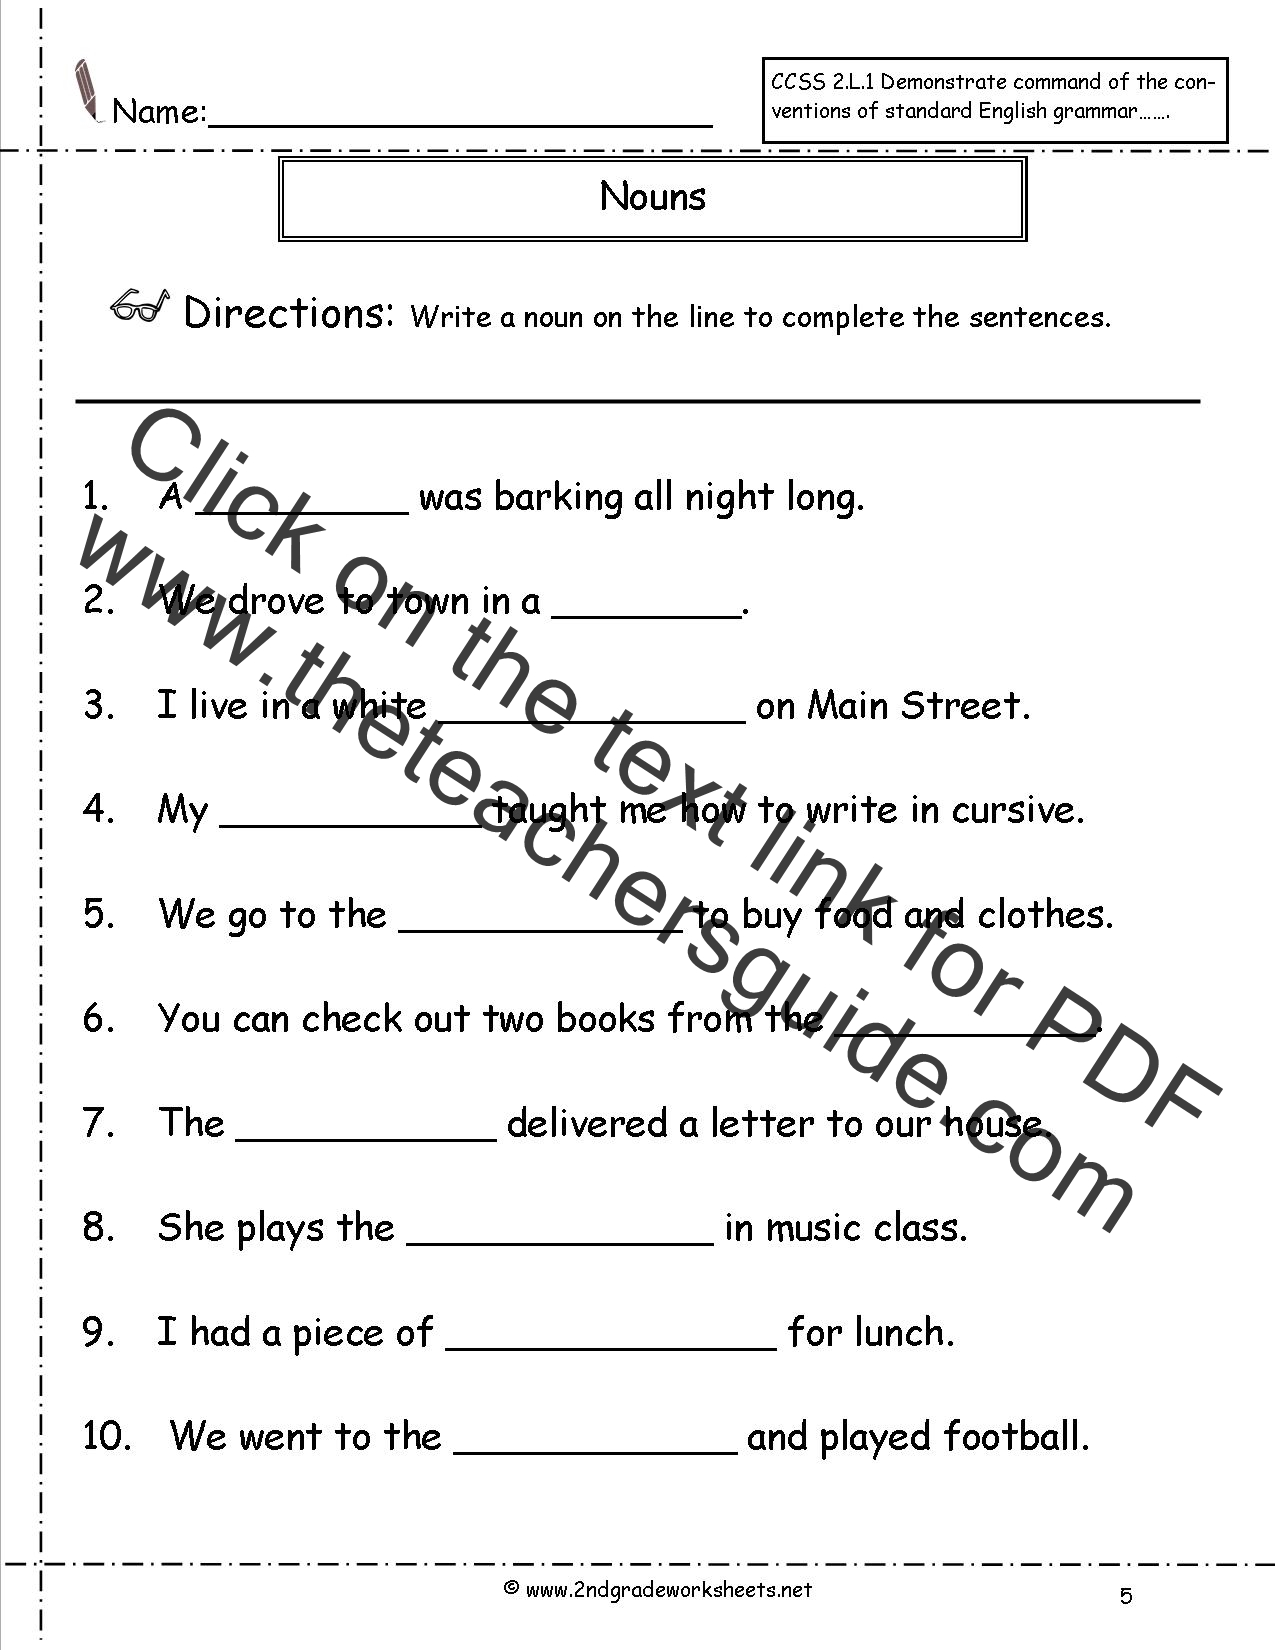 Printables Proper Noun Worksheets For 2nd Grade nouns worksheets and printouts worksheet